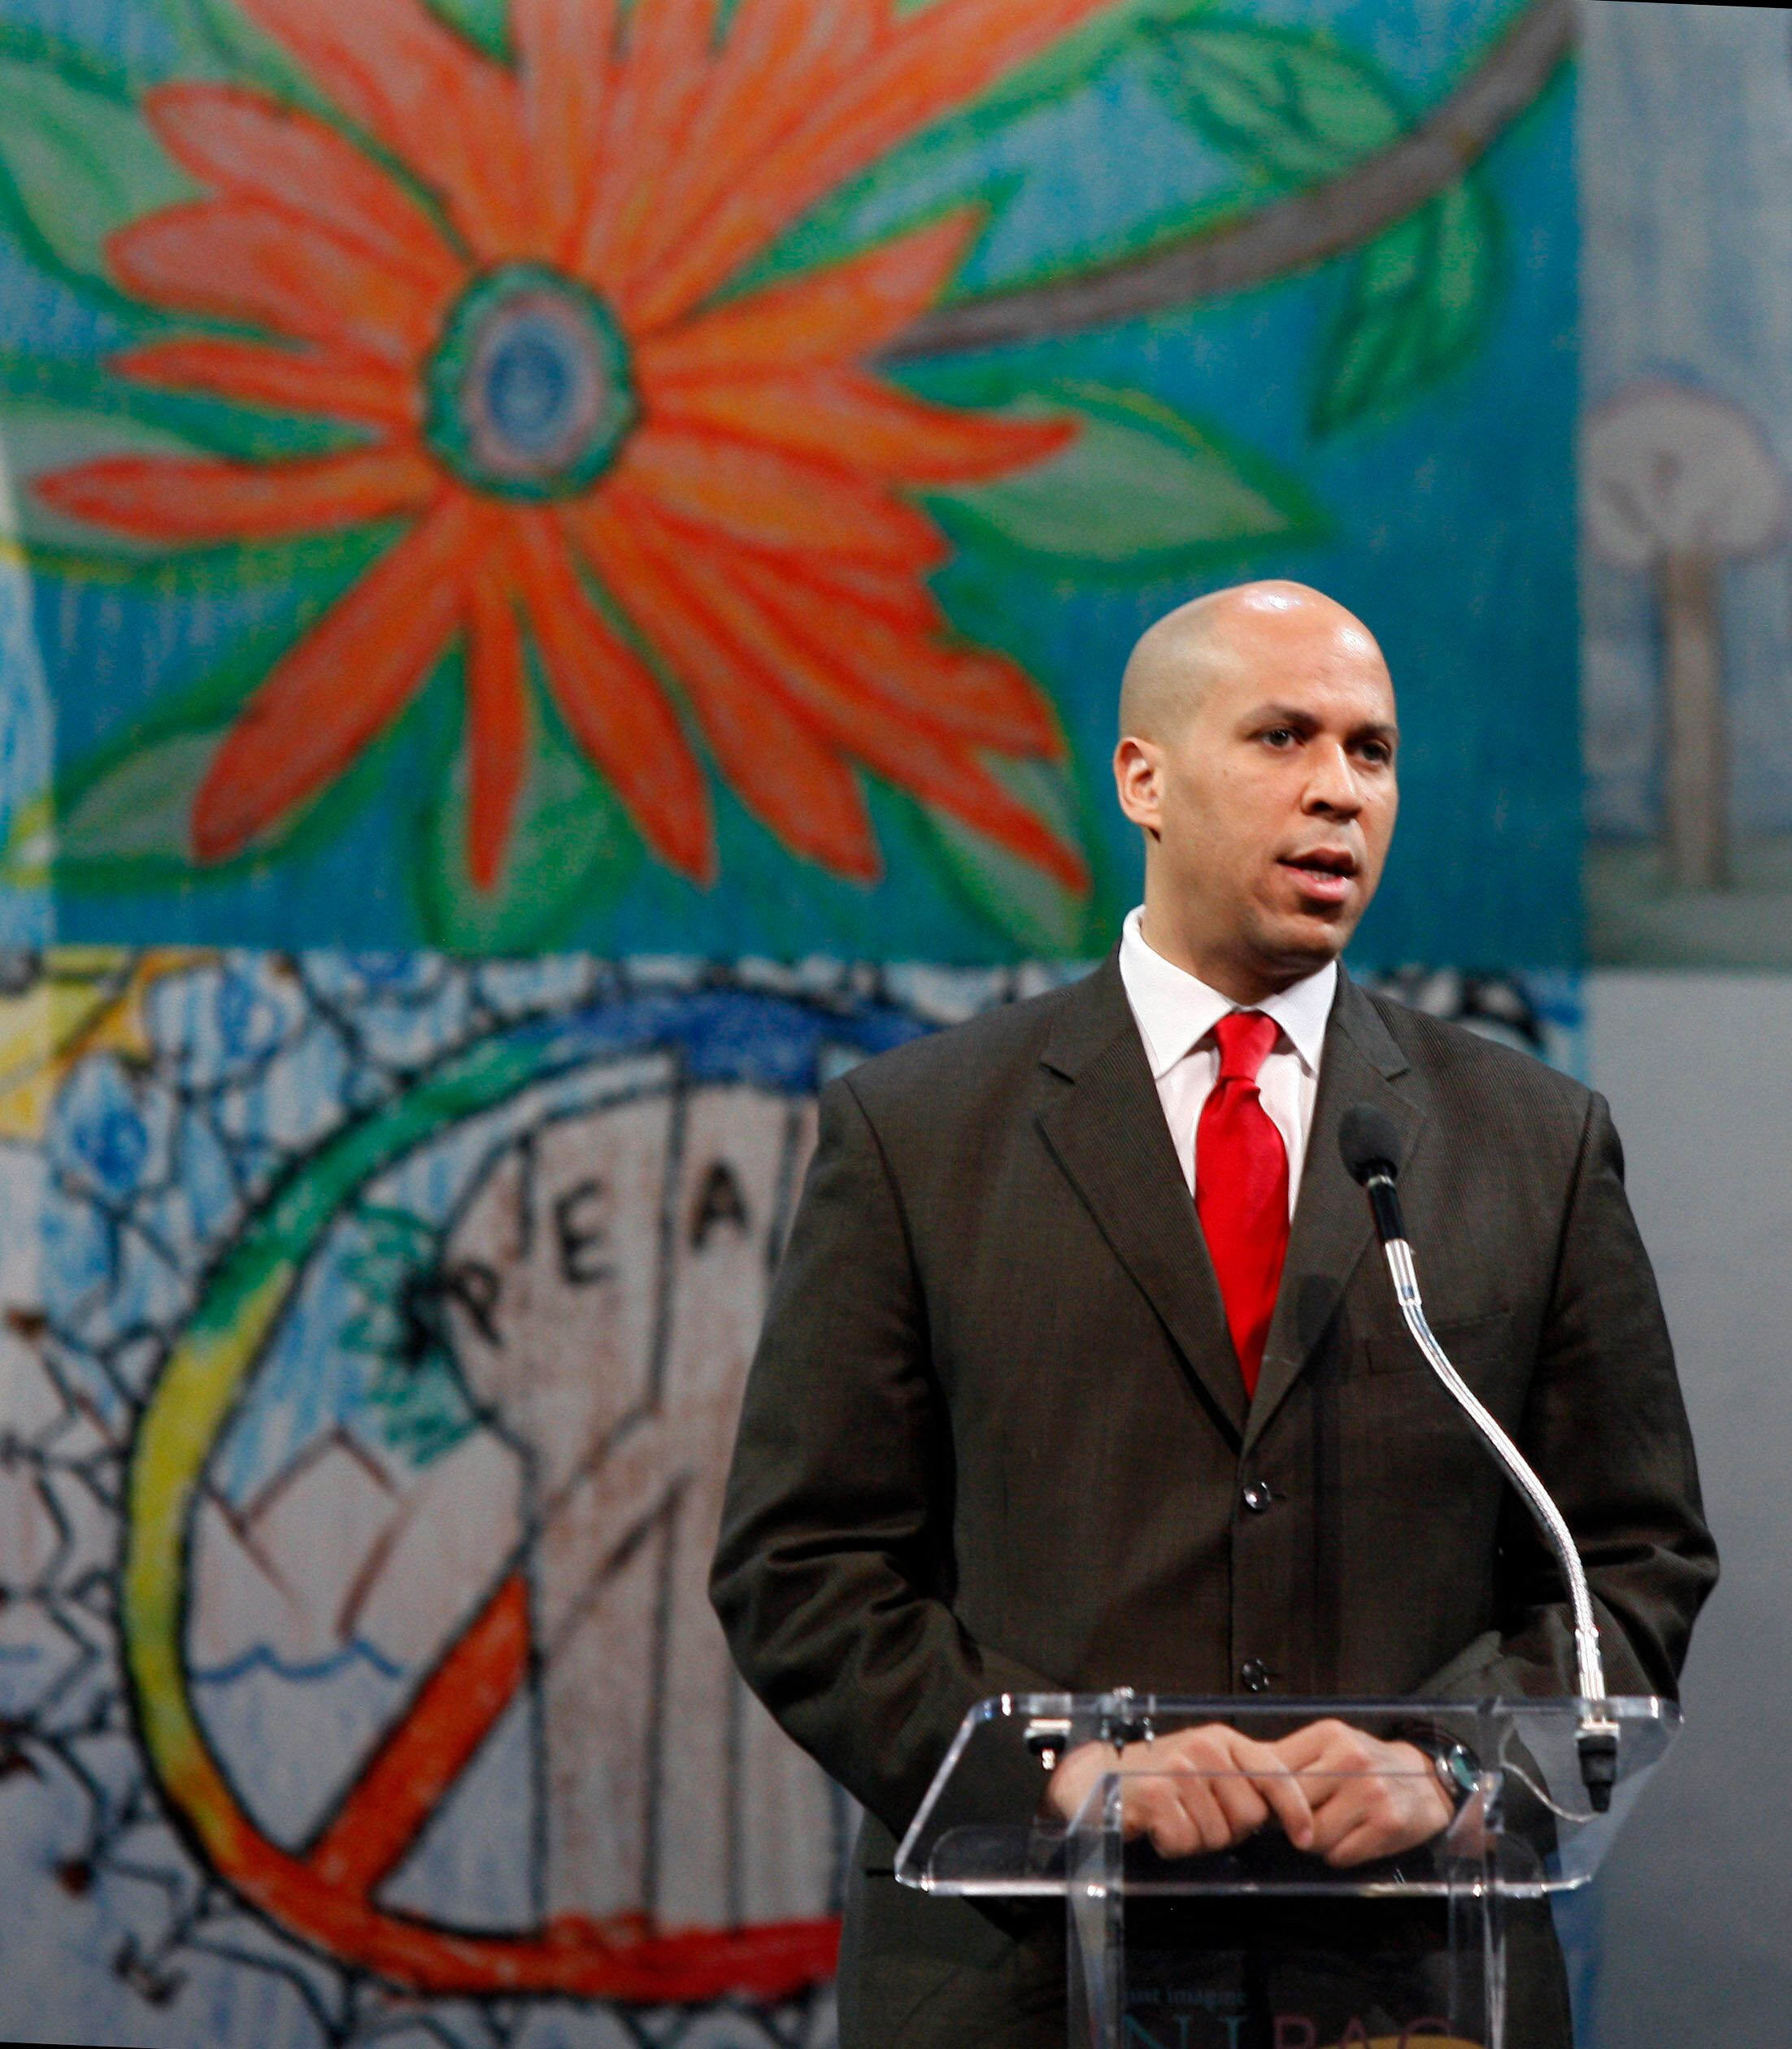 Newark Mayor Cory Booker opens the Newark Peace Education Summit early Friday, May 13, 2011, in Newark, N.J. The three-day summit on the power of nonviolence will include Nobel laureates, international leaders, local anti-violence activists and the Tibetan Buddhist spiritual leader the Dalai Lama. (AP Photo/Mel Evans)